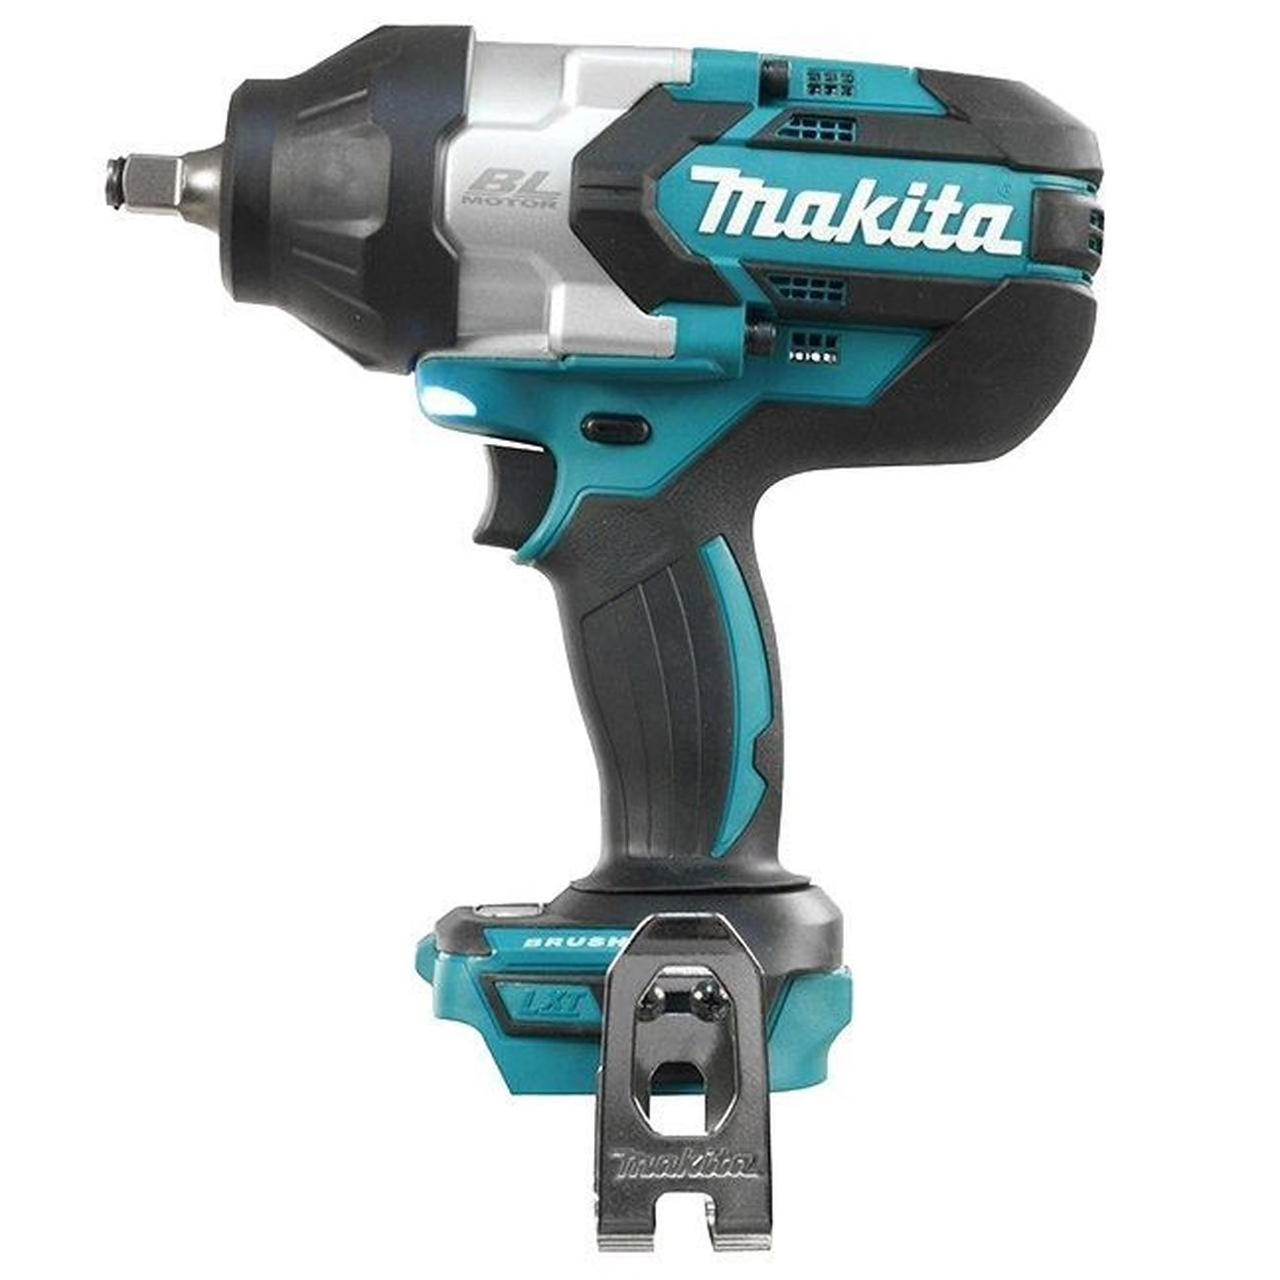 Makita Impact Wrenches